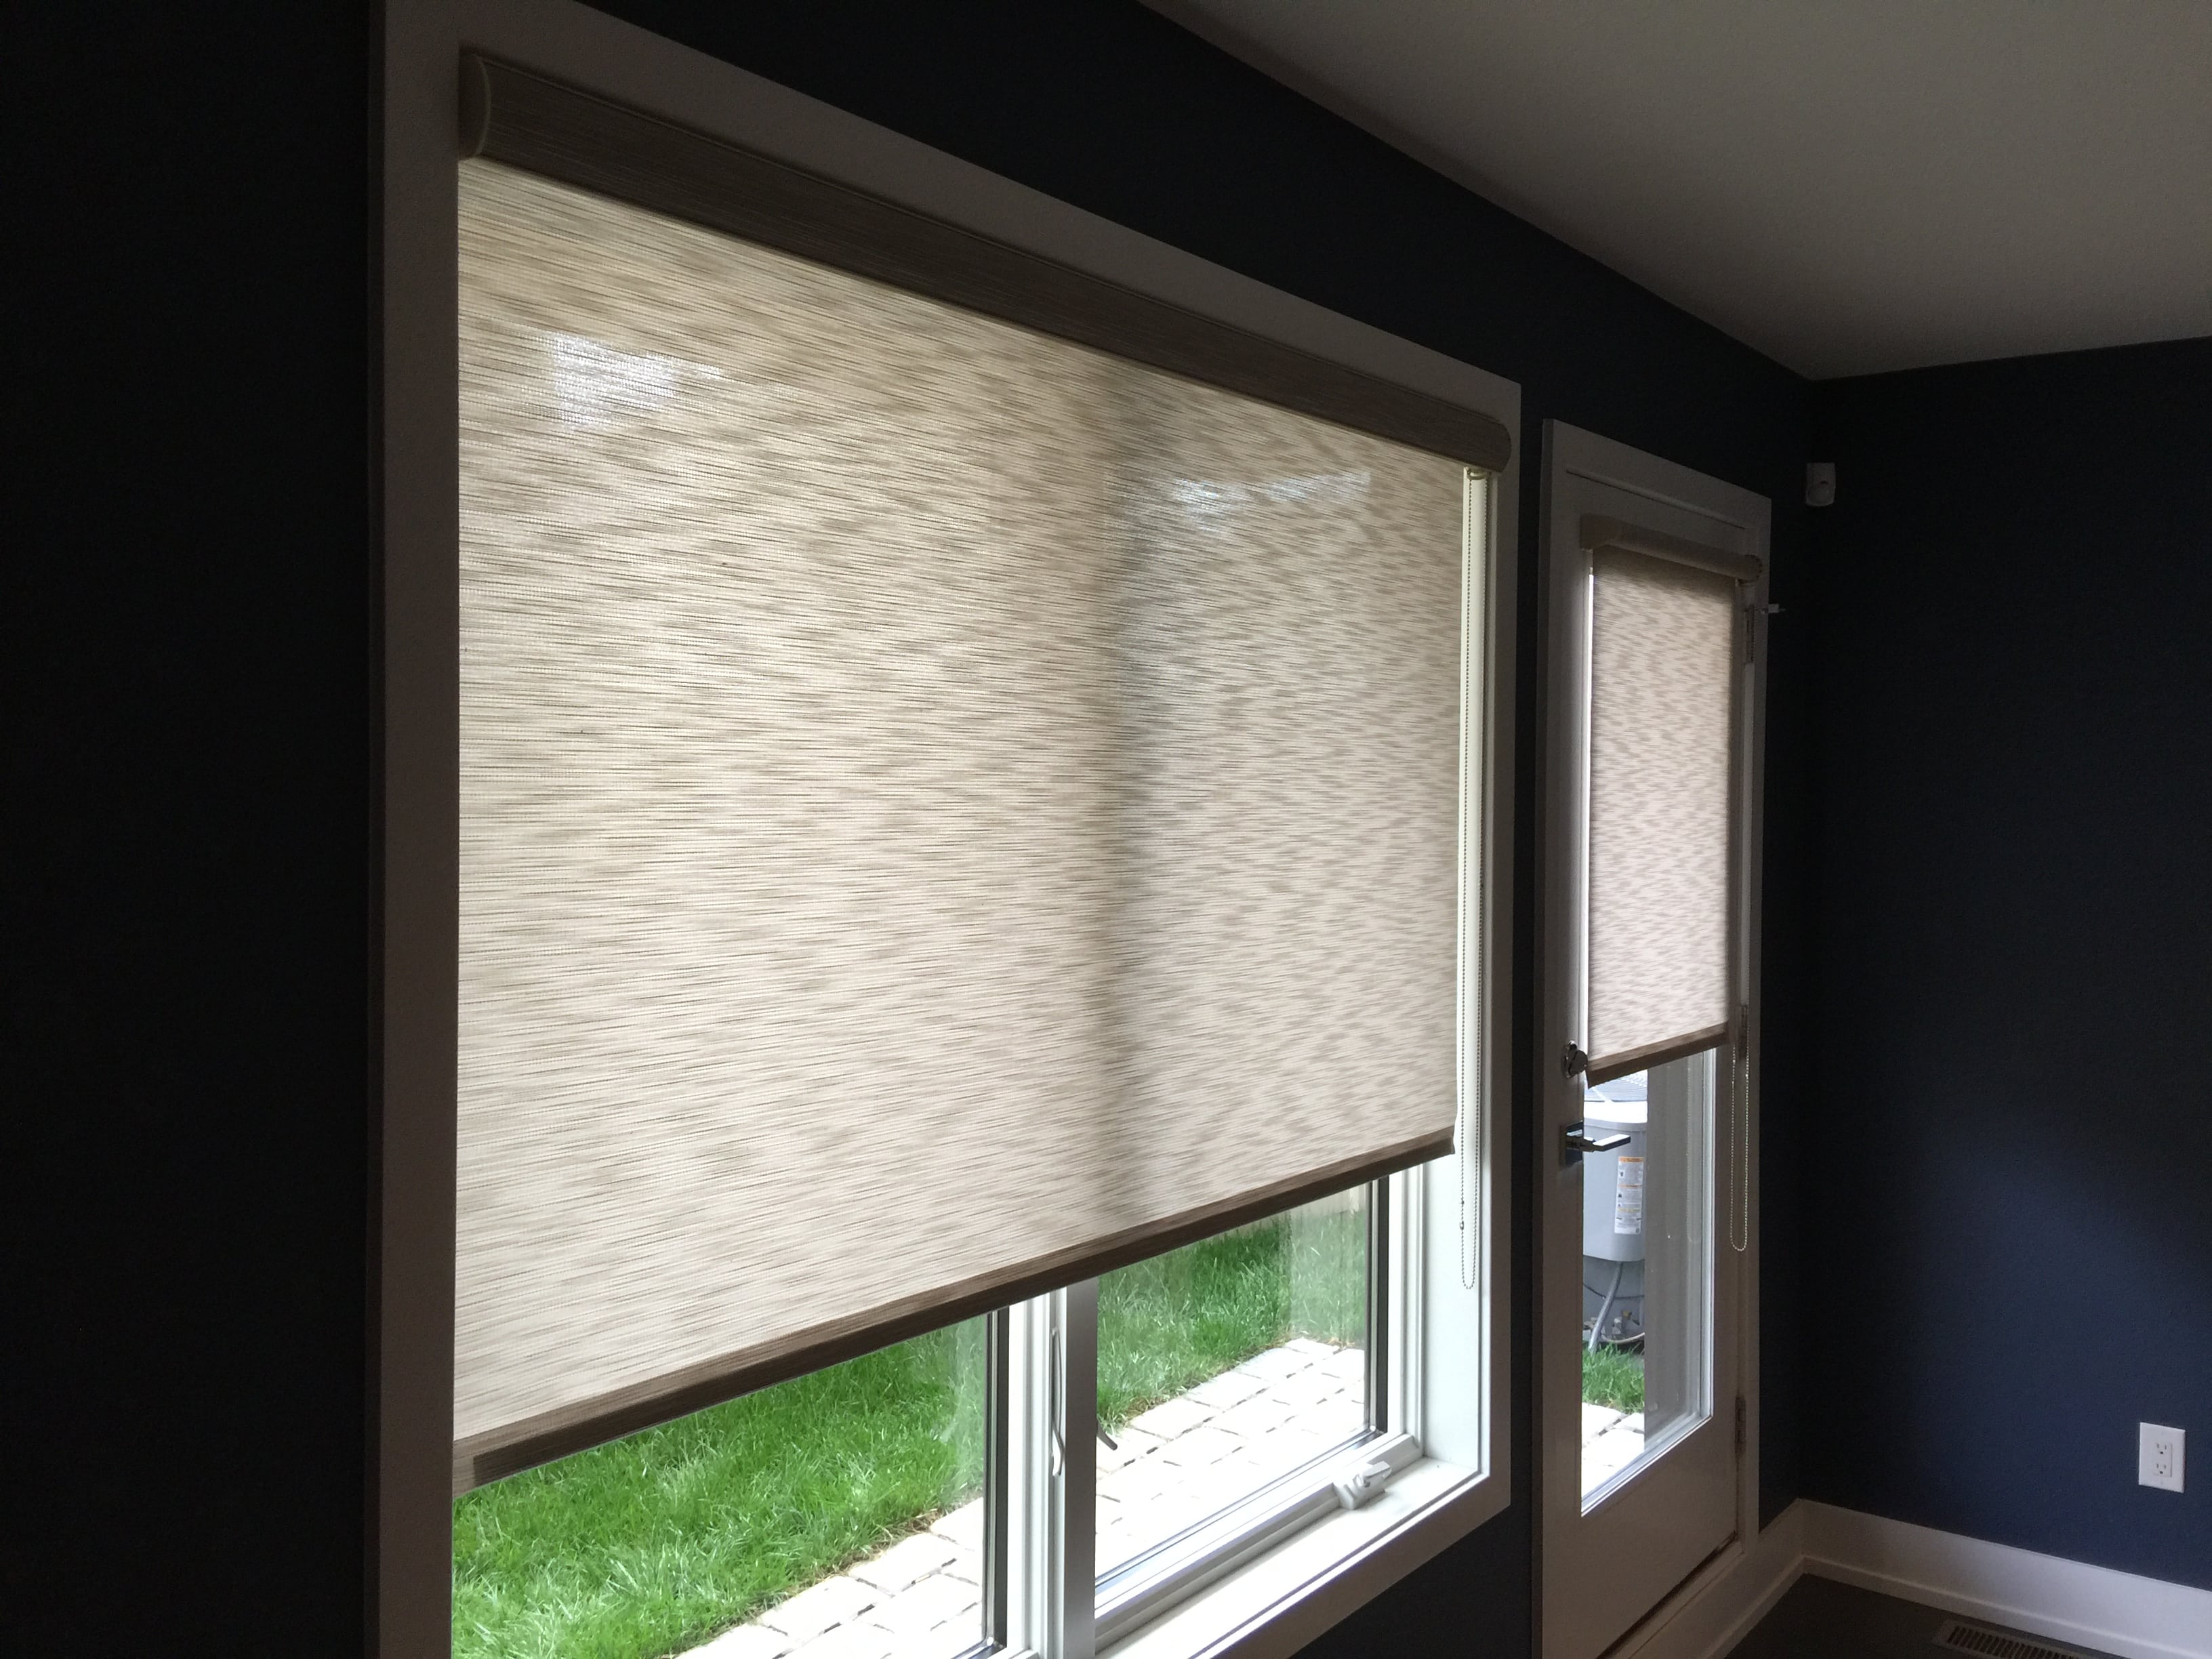 solar horizontal the blinds treatments b window home shades depot shade n